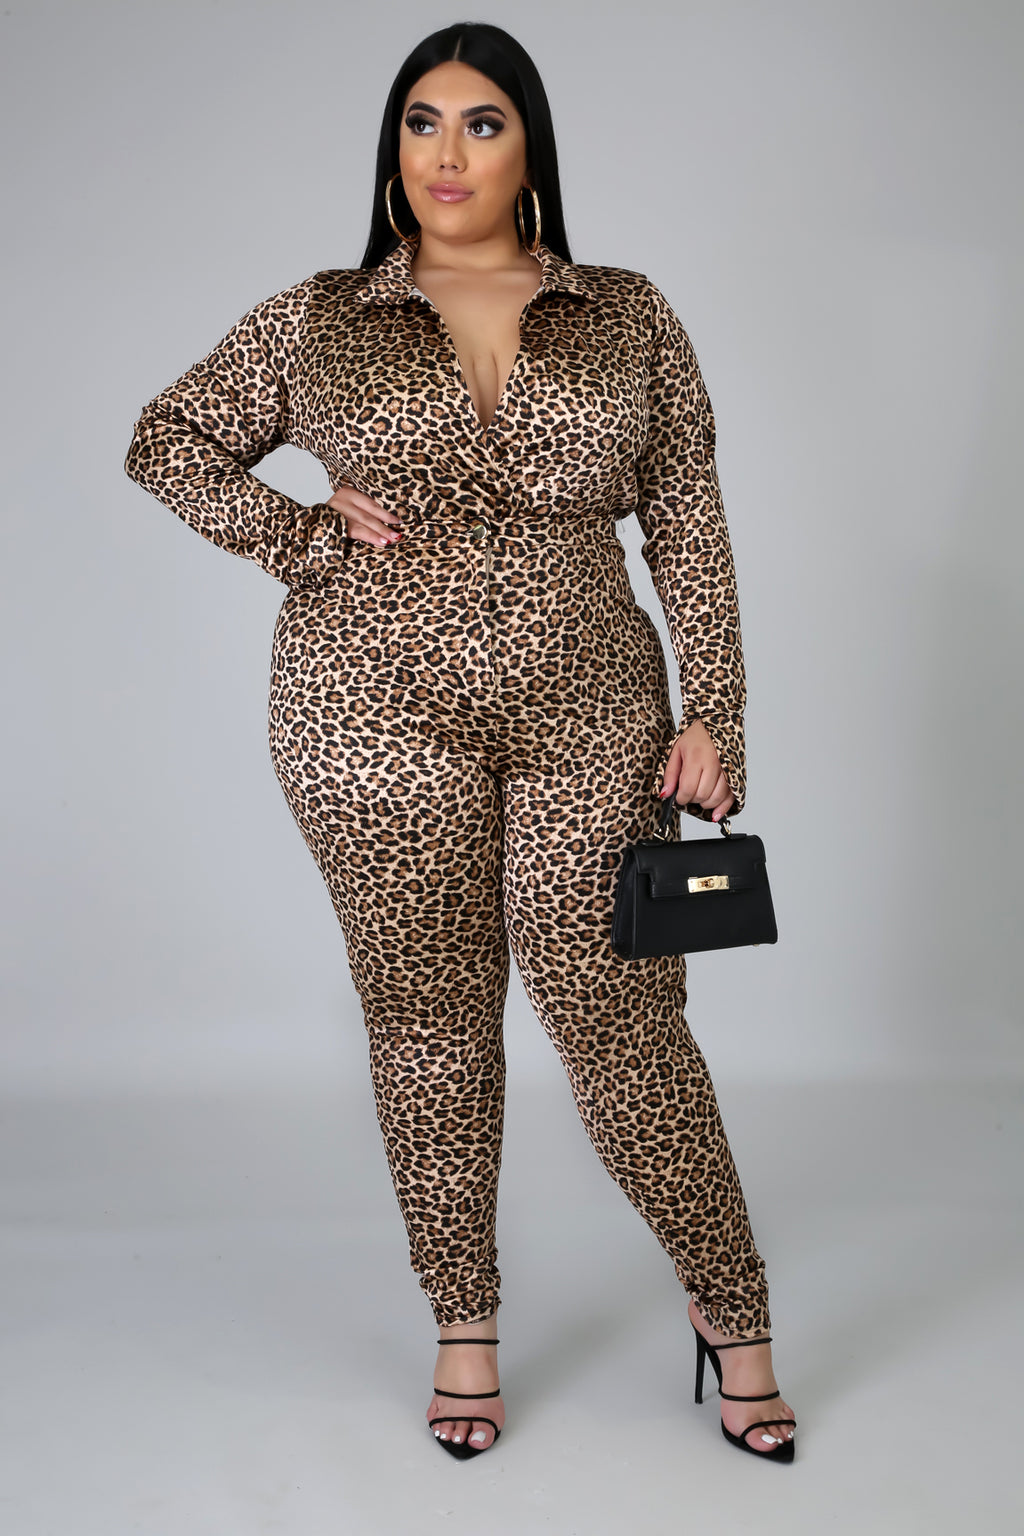 Cheetah Chain Bodysuit